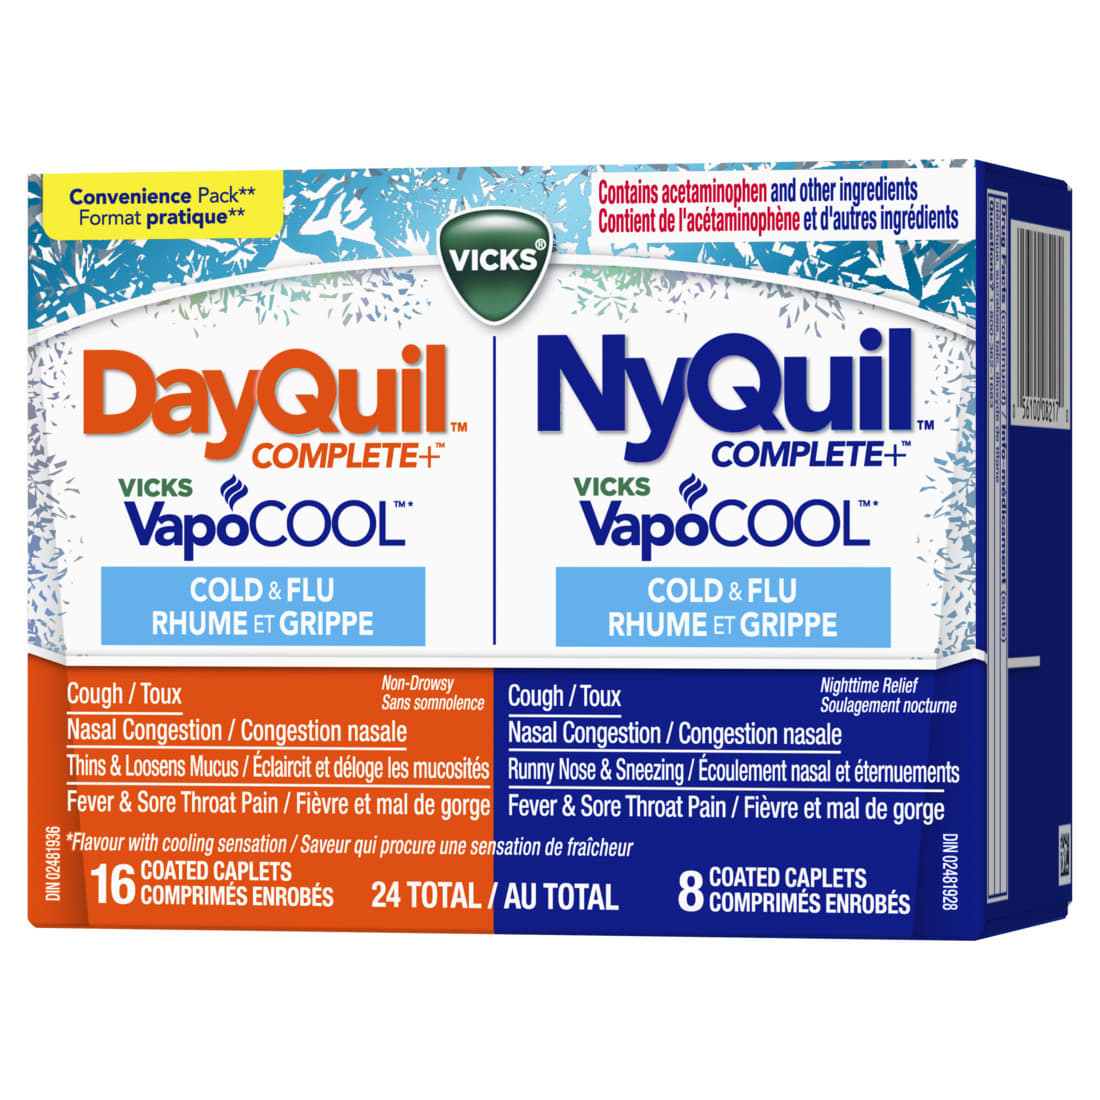 dayquil-nyquil-complete-tm-vicks-vapocool-tm-nighttime-cough-cold-and-flu-top